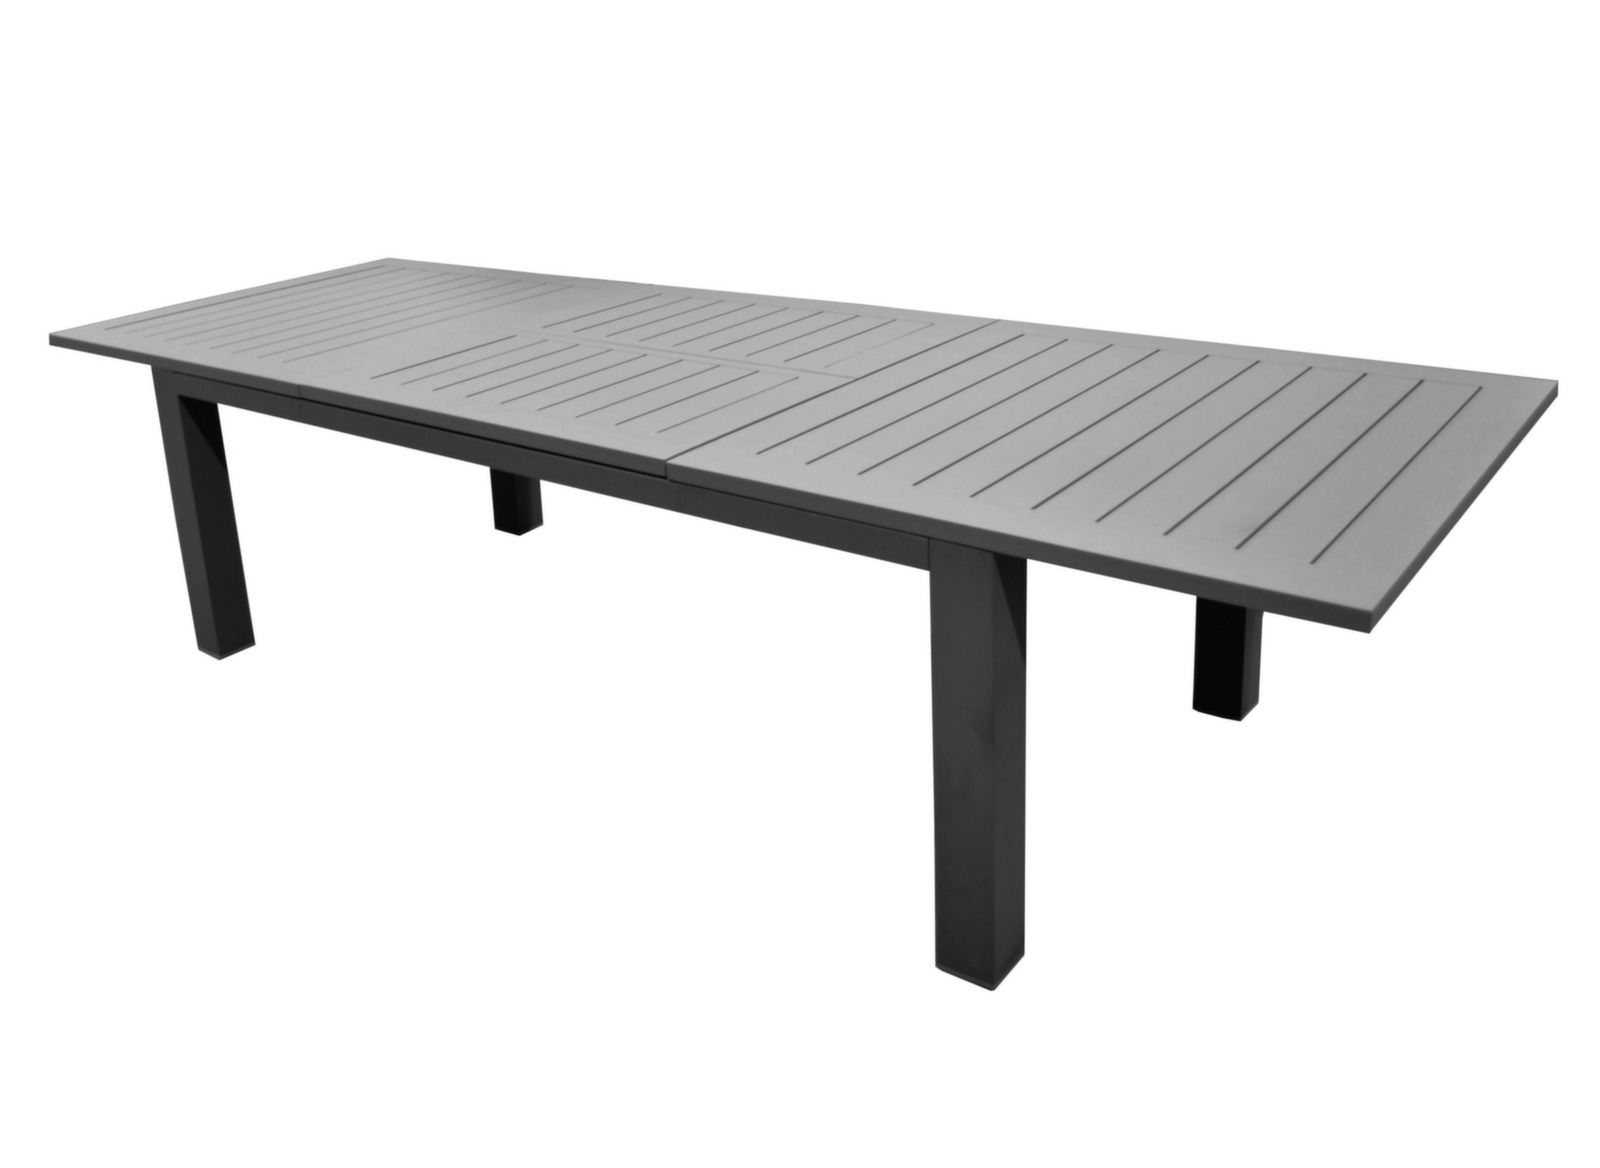 Table de jardin aluminium 12 places aurore oc o - Table de jardin en alu ...